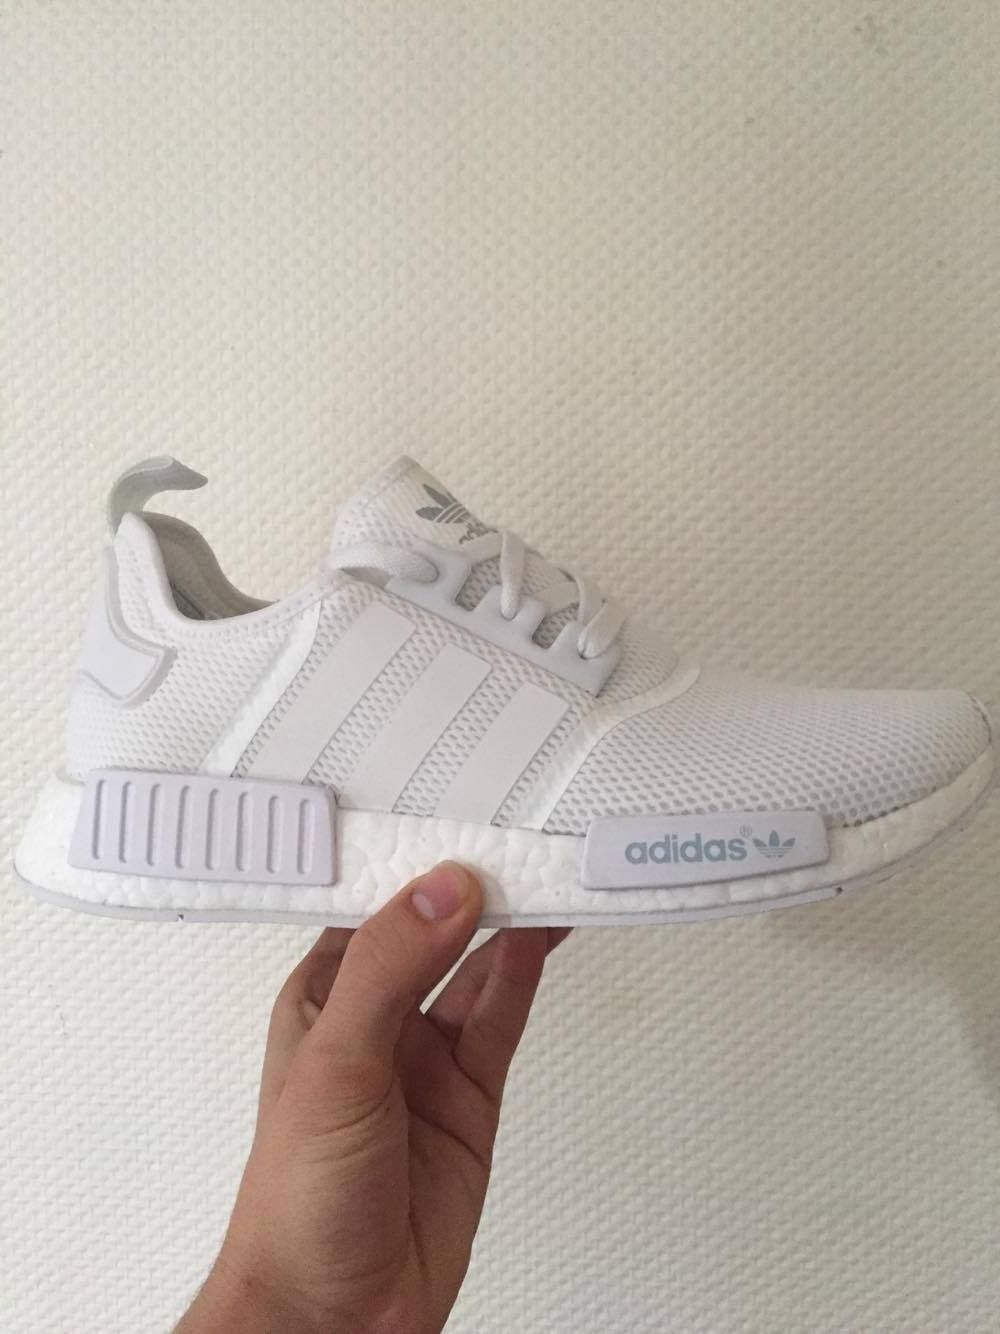 adidas nmd triple white info. Black Bedroom Furniture Sets. Home Design Ideas